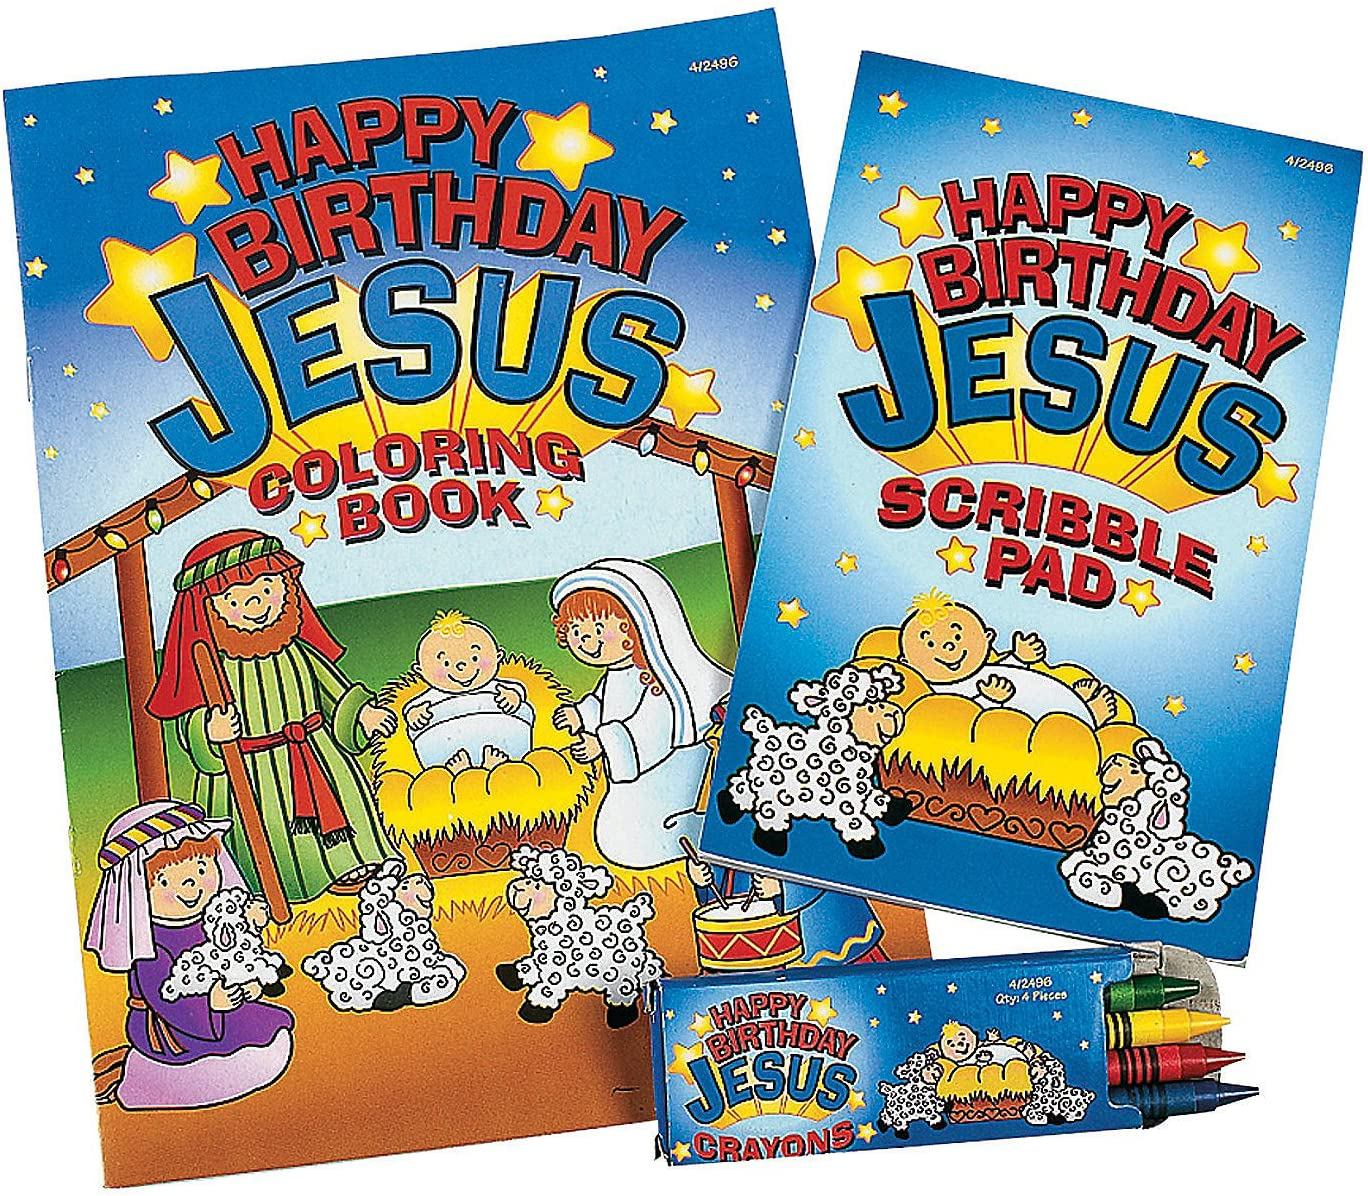 5 ☆ popular Fun Express - Happy Birthday Christmas Jesus Coloring Sets Limited price for